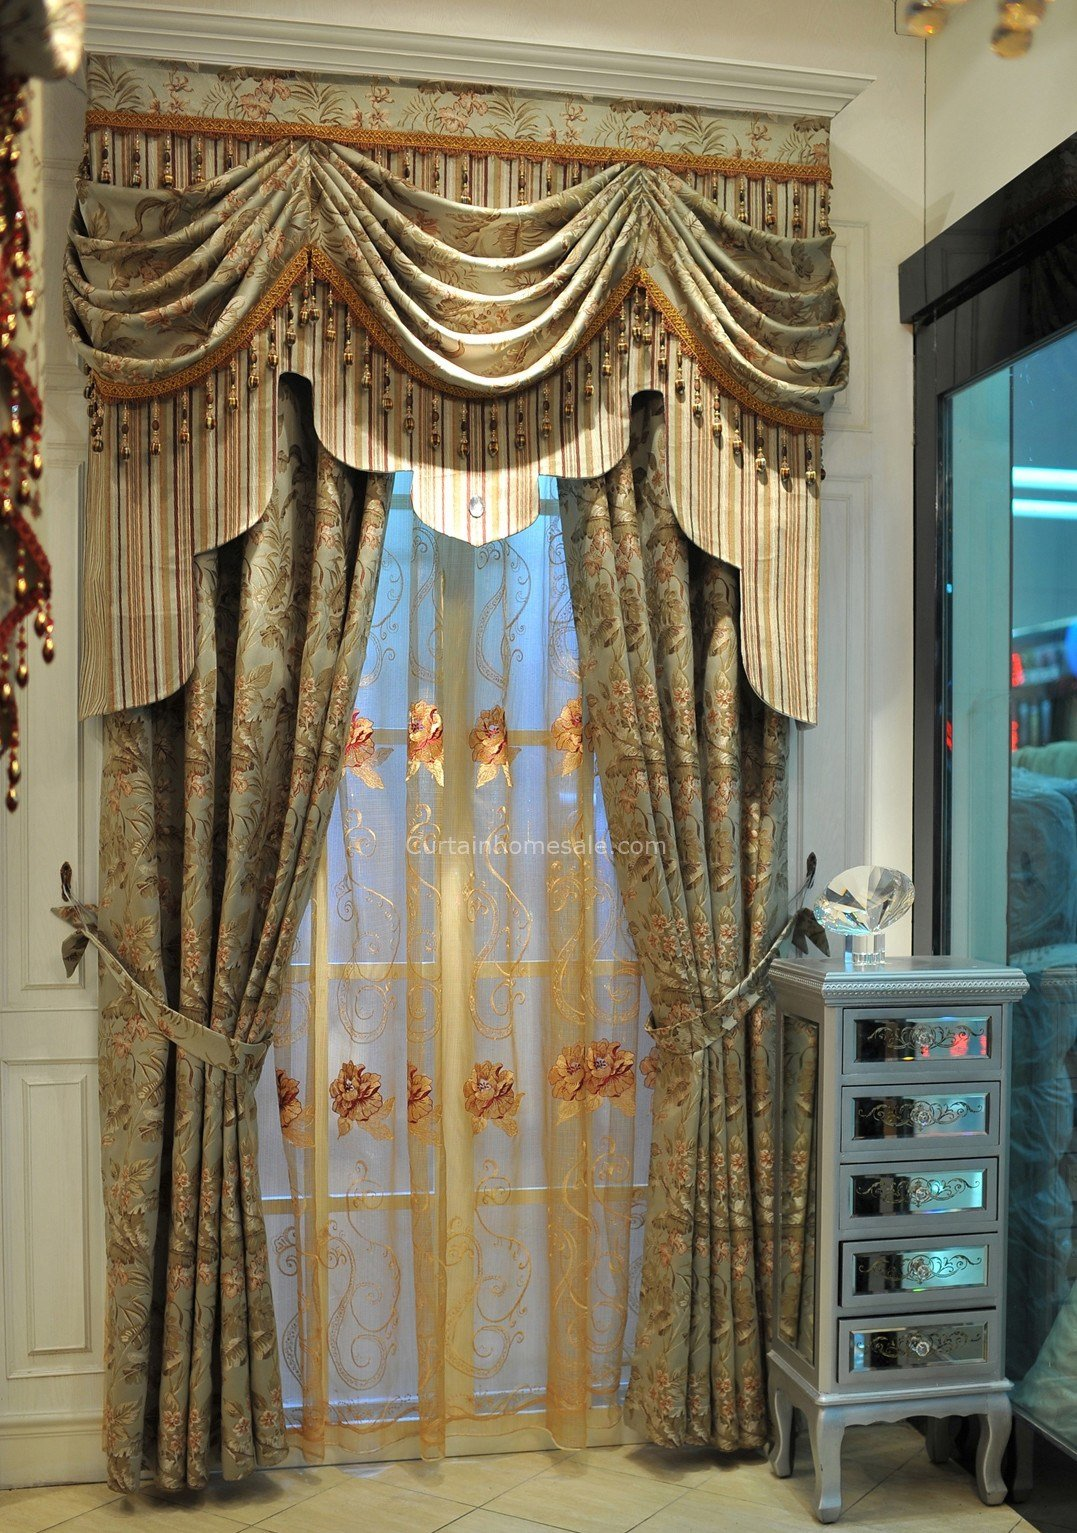 Best Vintage Lace Curtains In Combined Green Color For Fancy Living Room Or Bedroom With Pictures